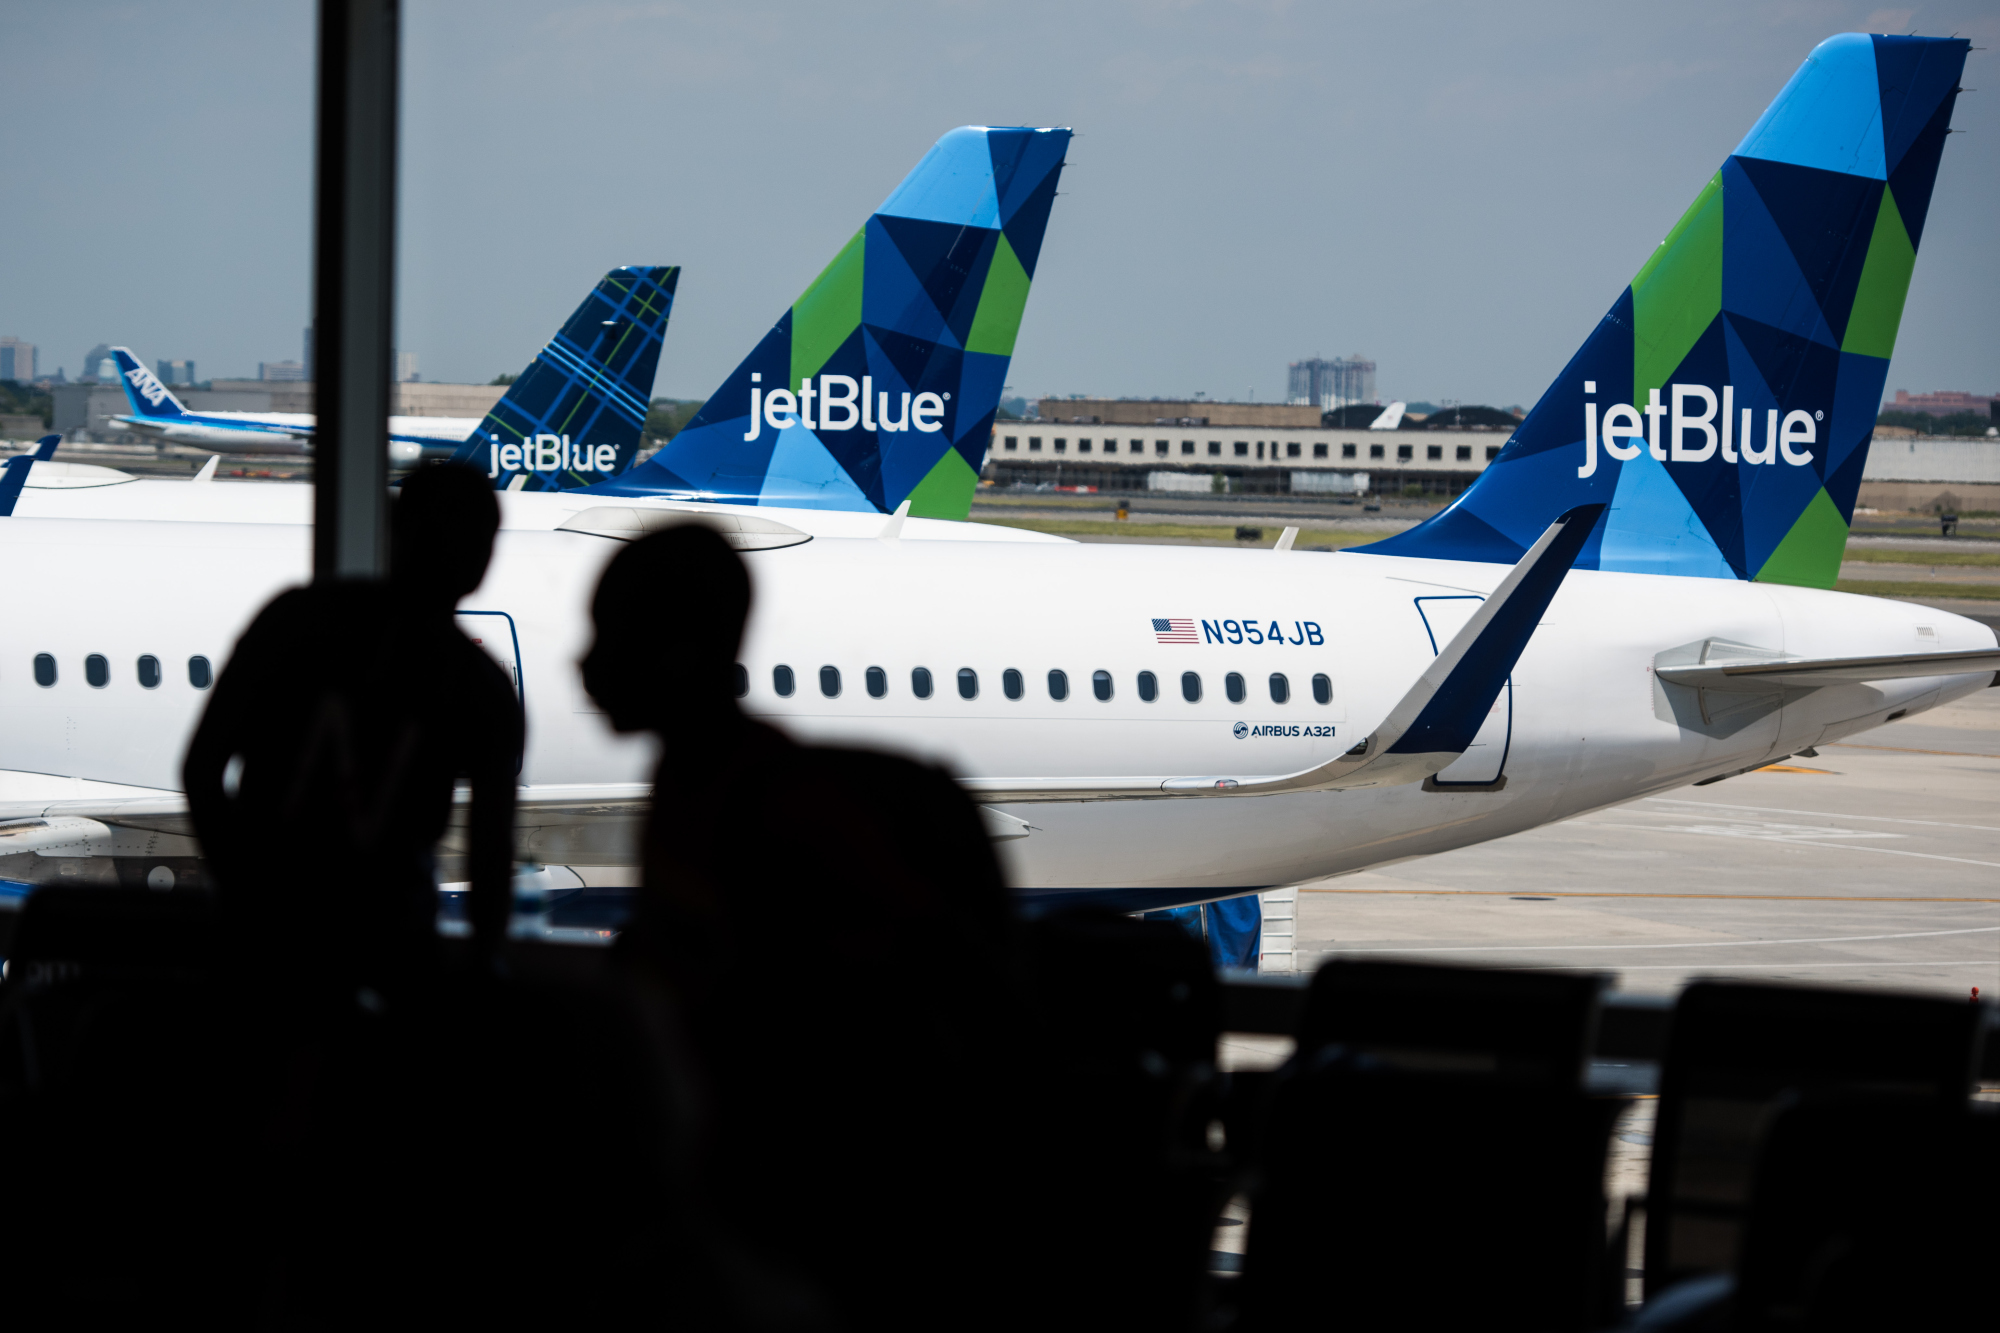 jetblue bets on bag fees and fewer frills fare to boost revenue